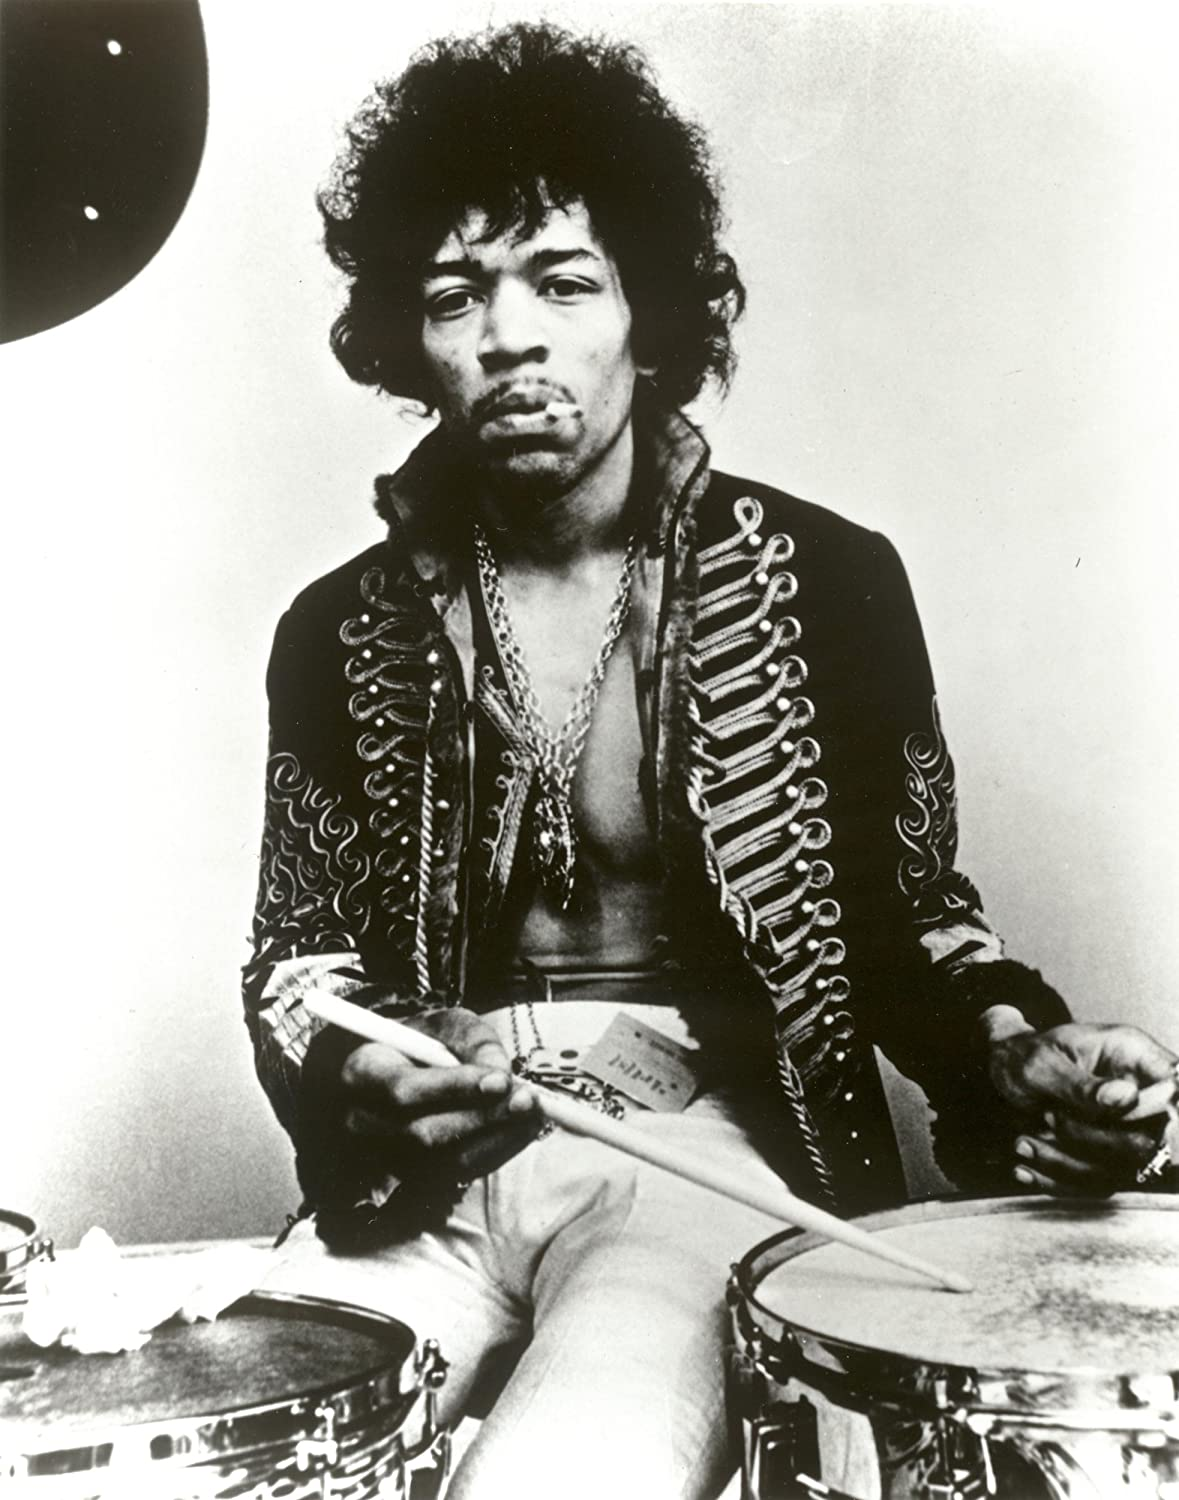 Jimi Hendrix Photo latest Druming Drums Music 8x10 Ranking TOP4 Photos Hollywood